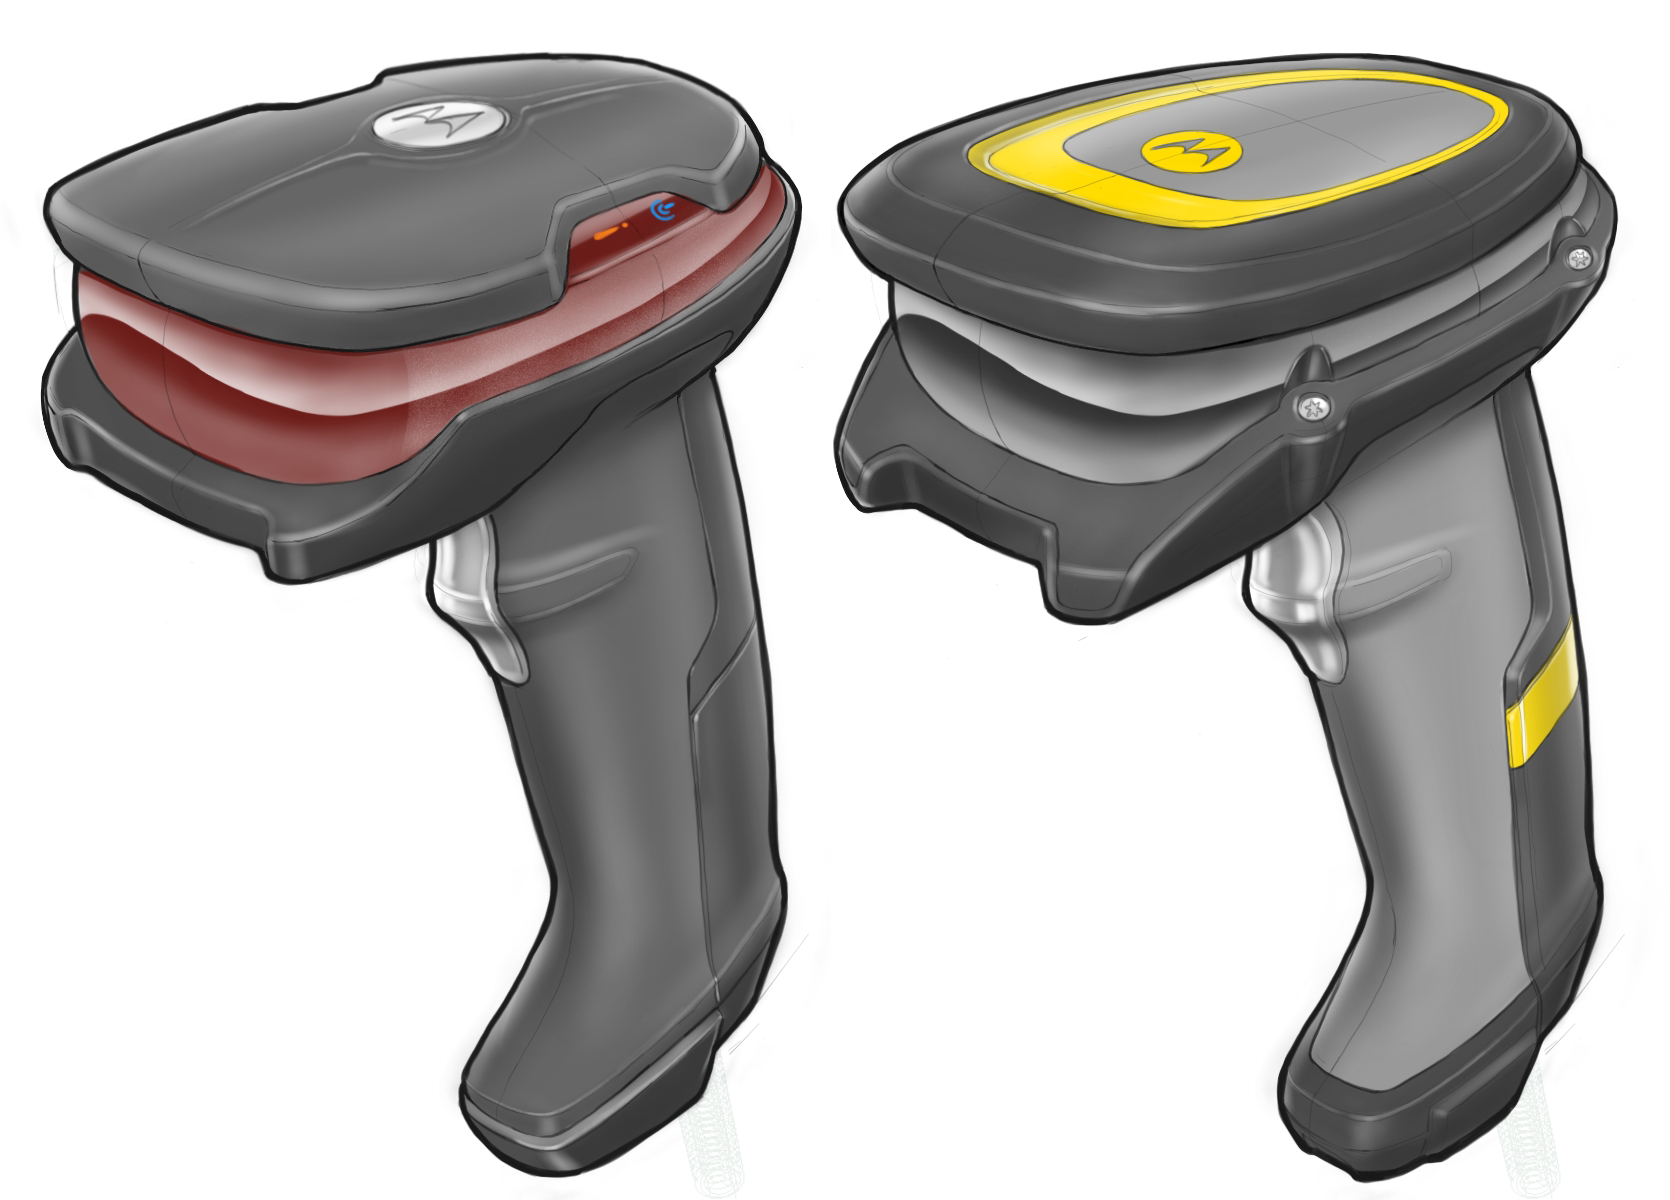 Concept sketches for different colours, materials and finishes of the high-end ruggedised Halo concept scanner